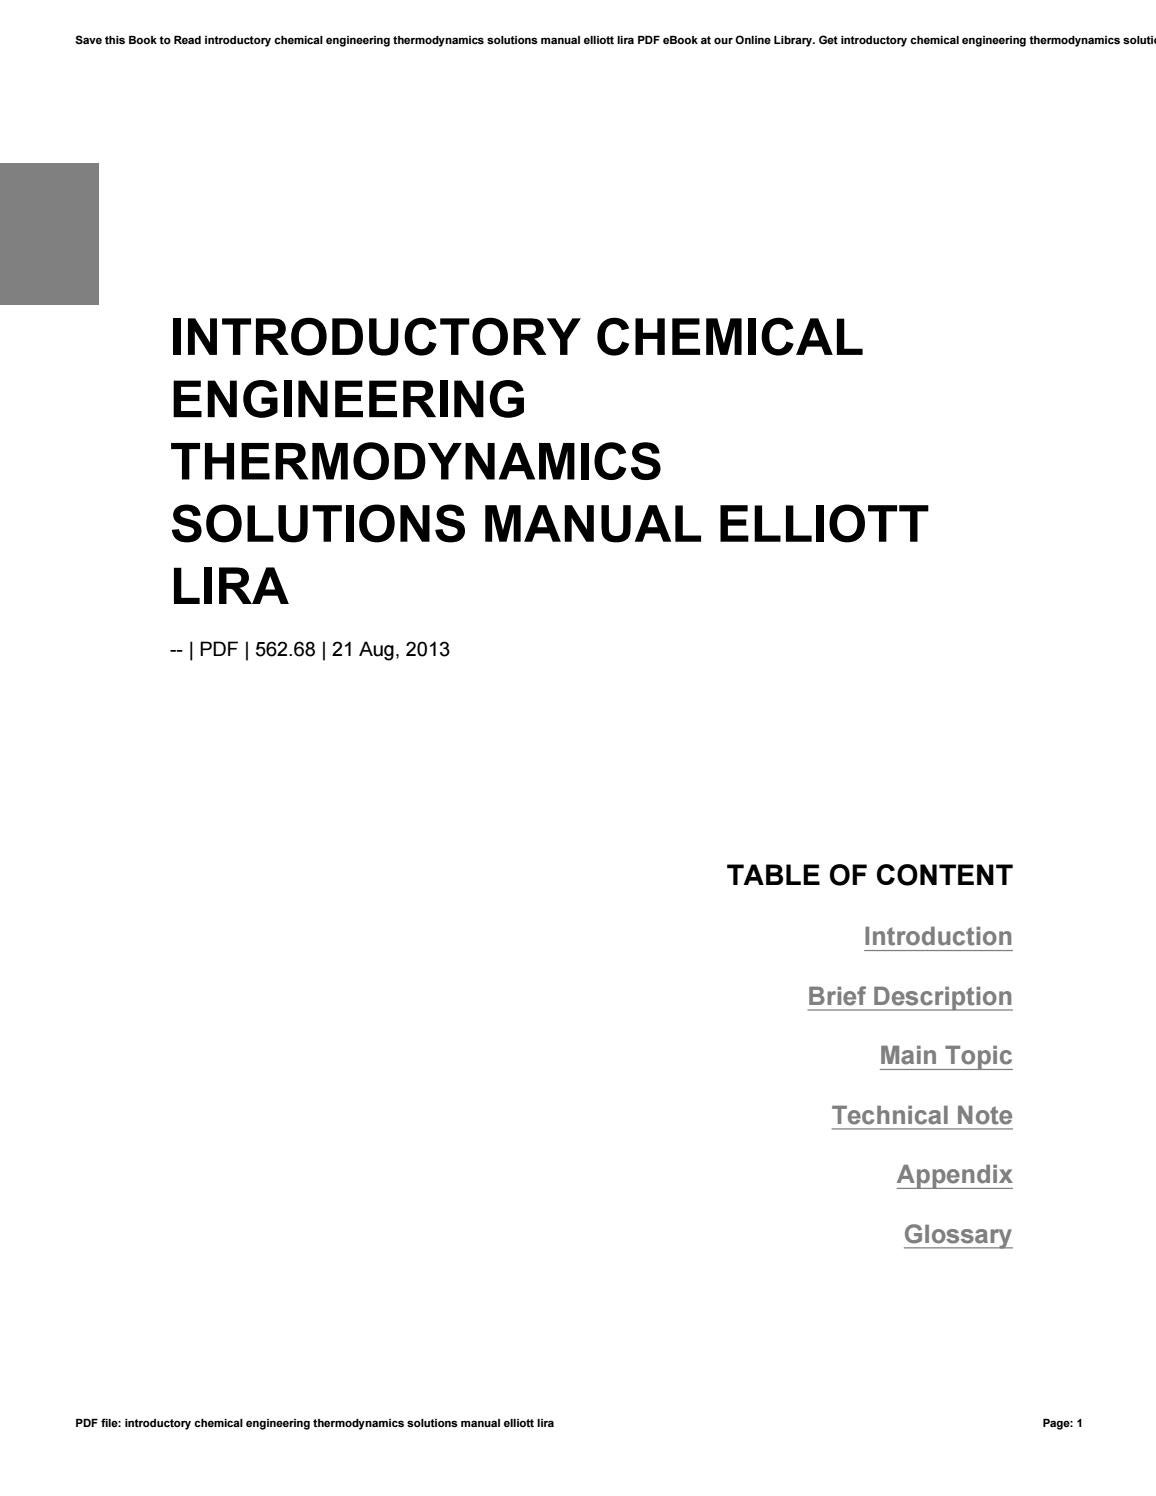 Introductory chemical engineering thermodynamics solutions manual elliott  lira by freealtgen4 - issuu